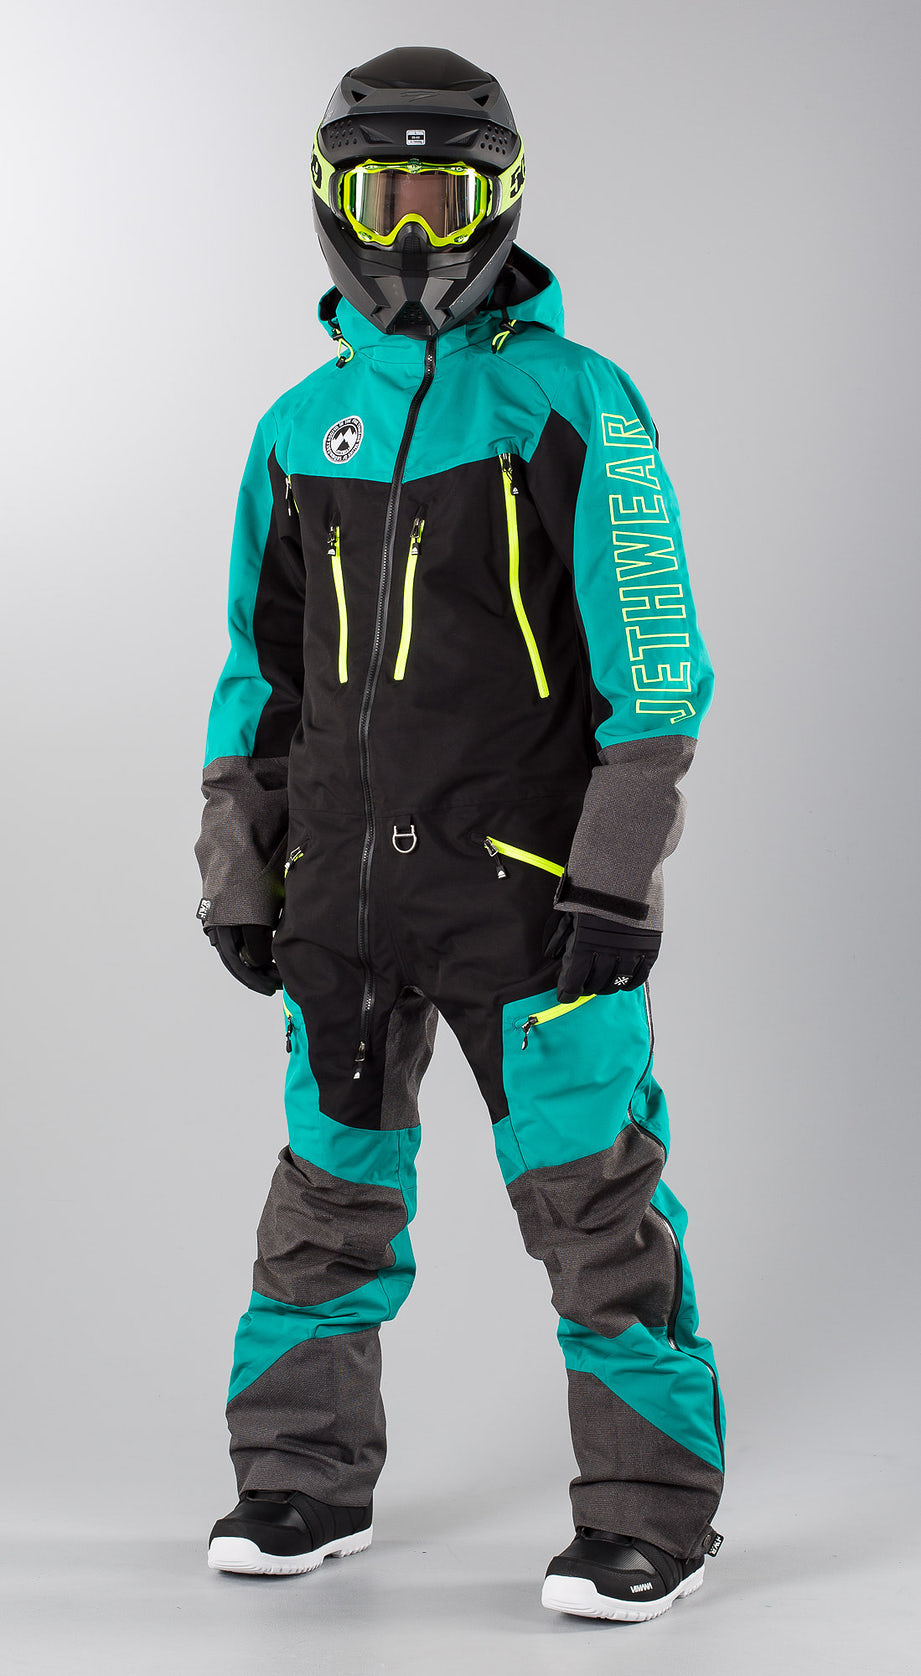 Jethwear Freedom Suit  Teal Snowmobile clothing Multi